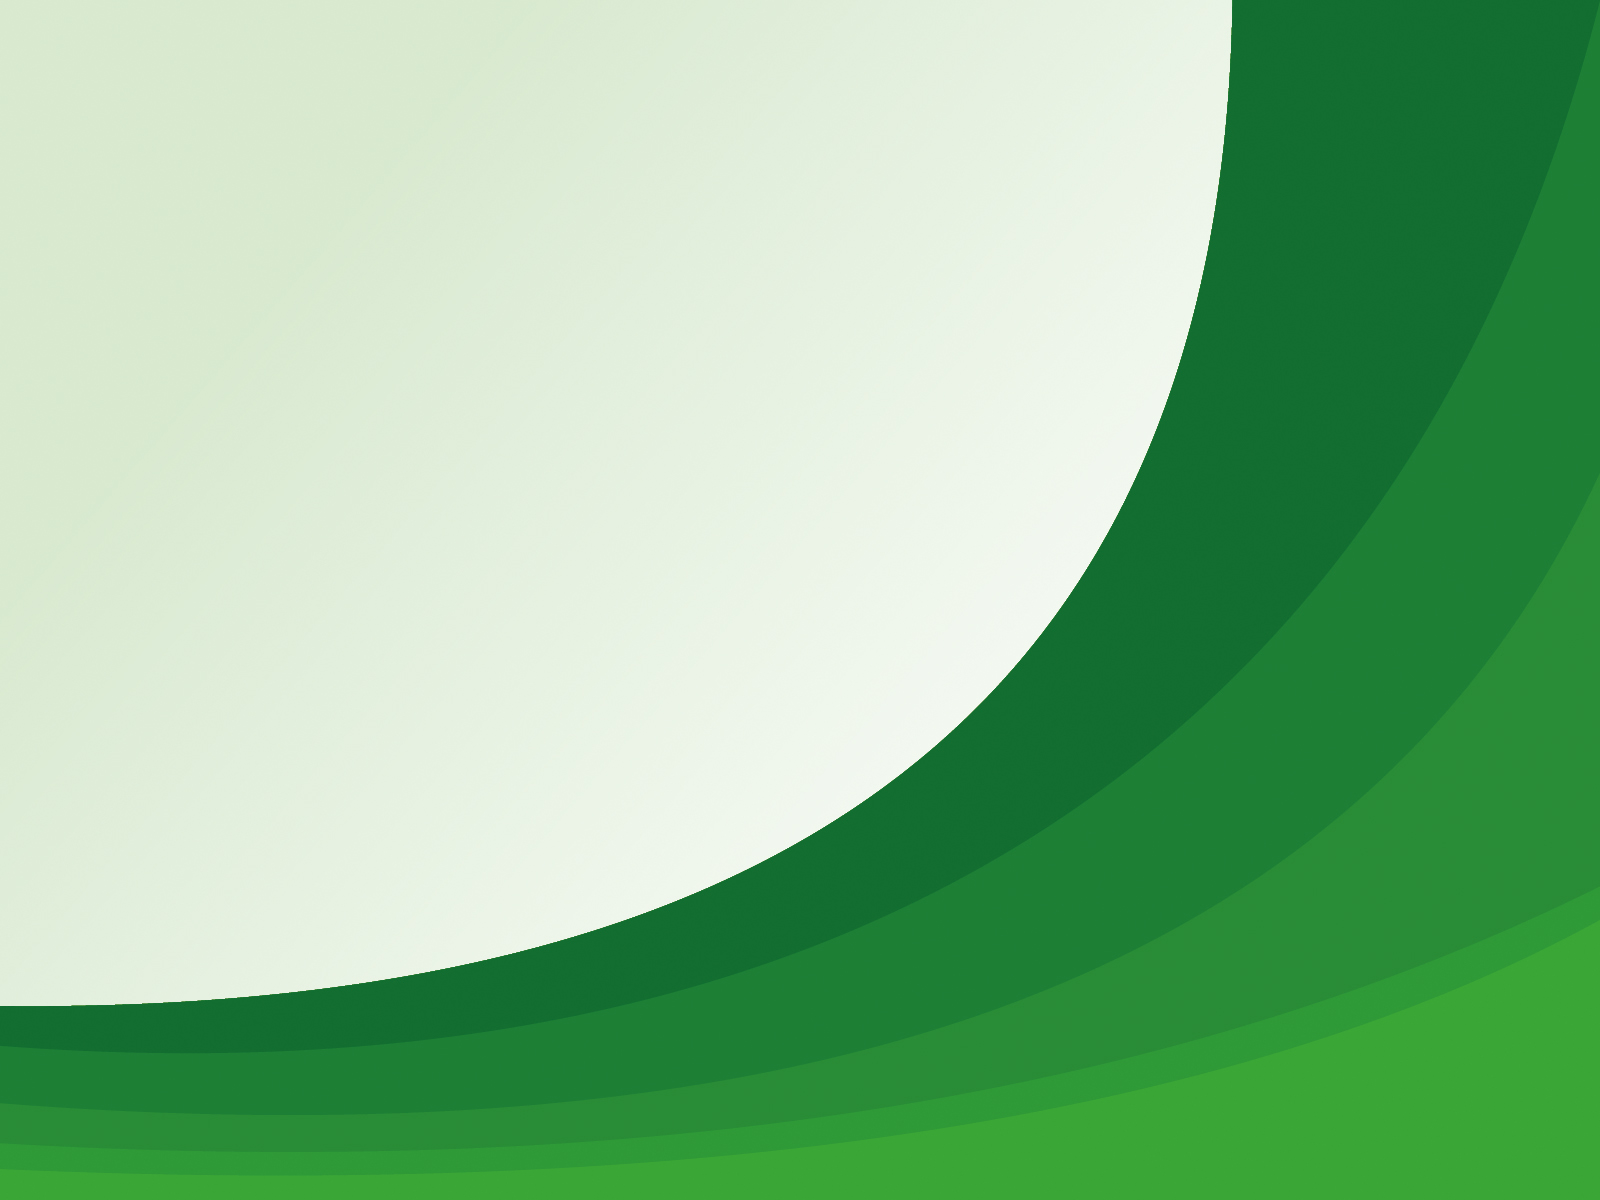 Simple Green Themes Backgrounds Abstract Green Nature Templates